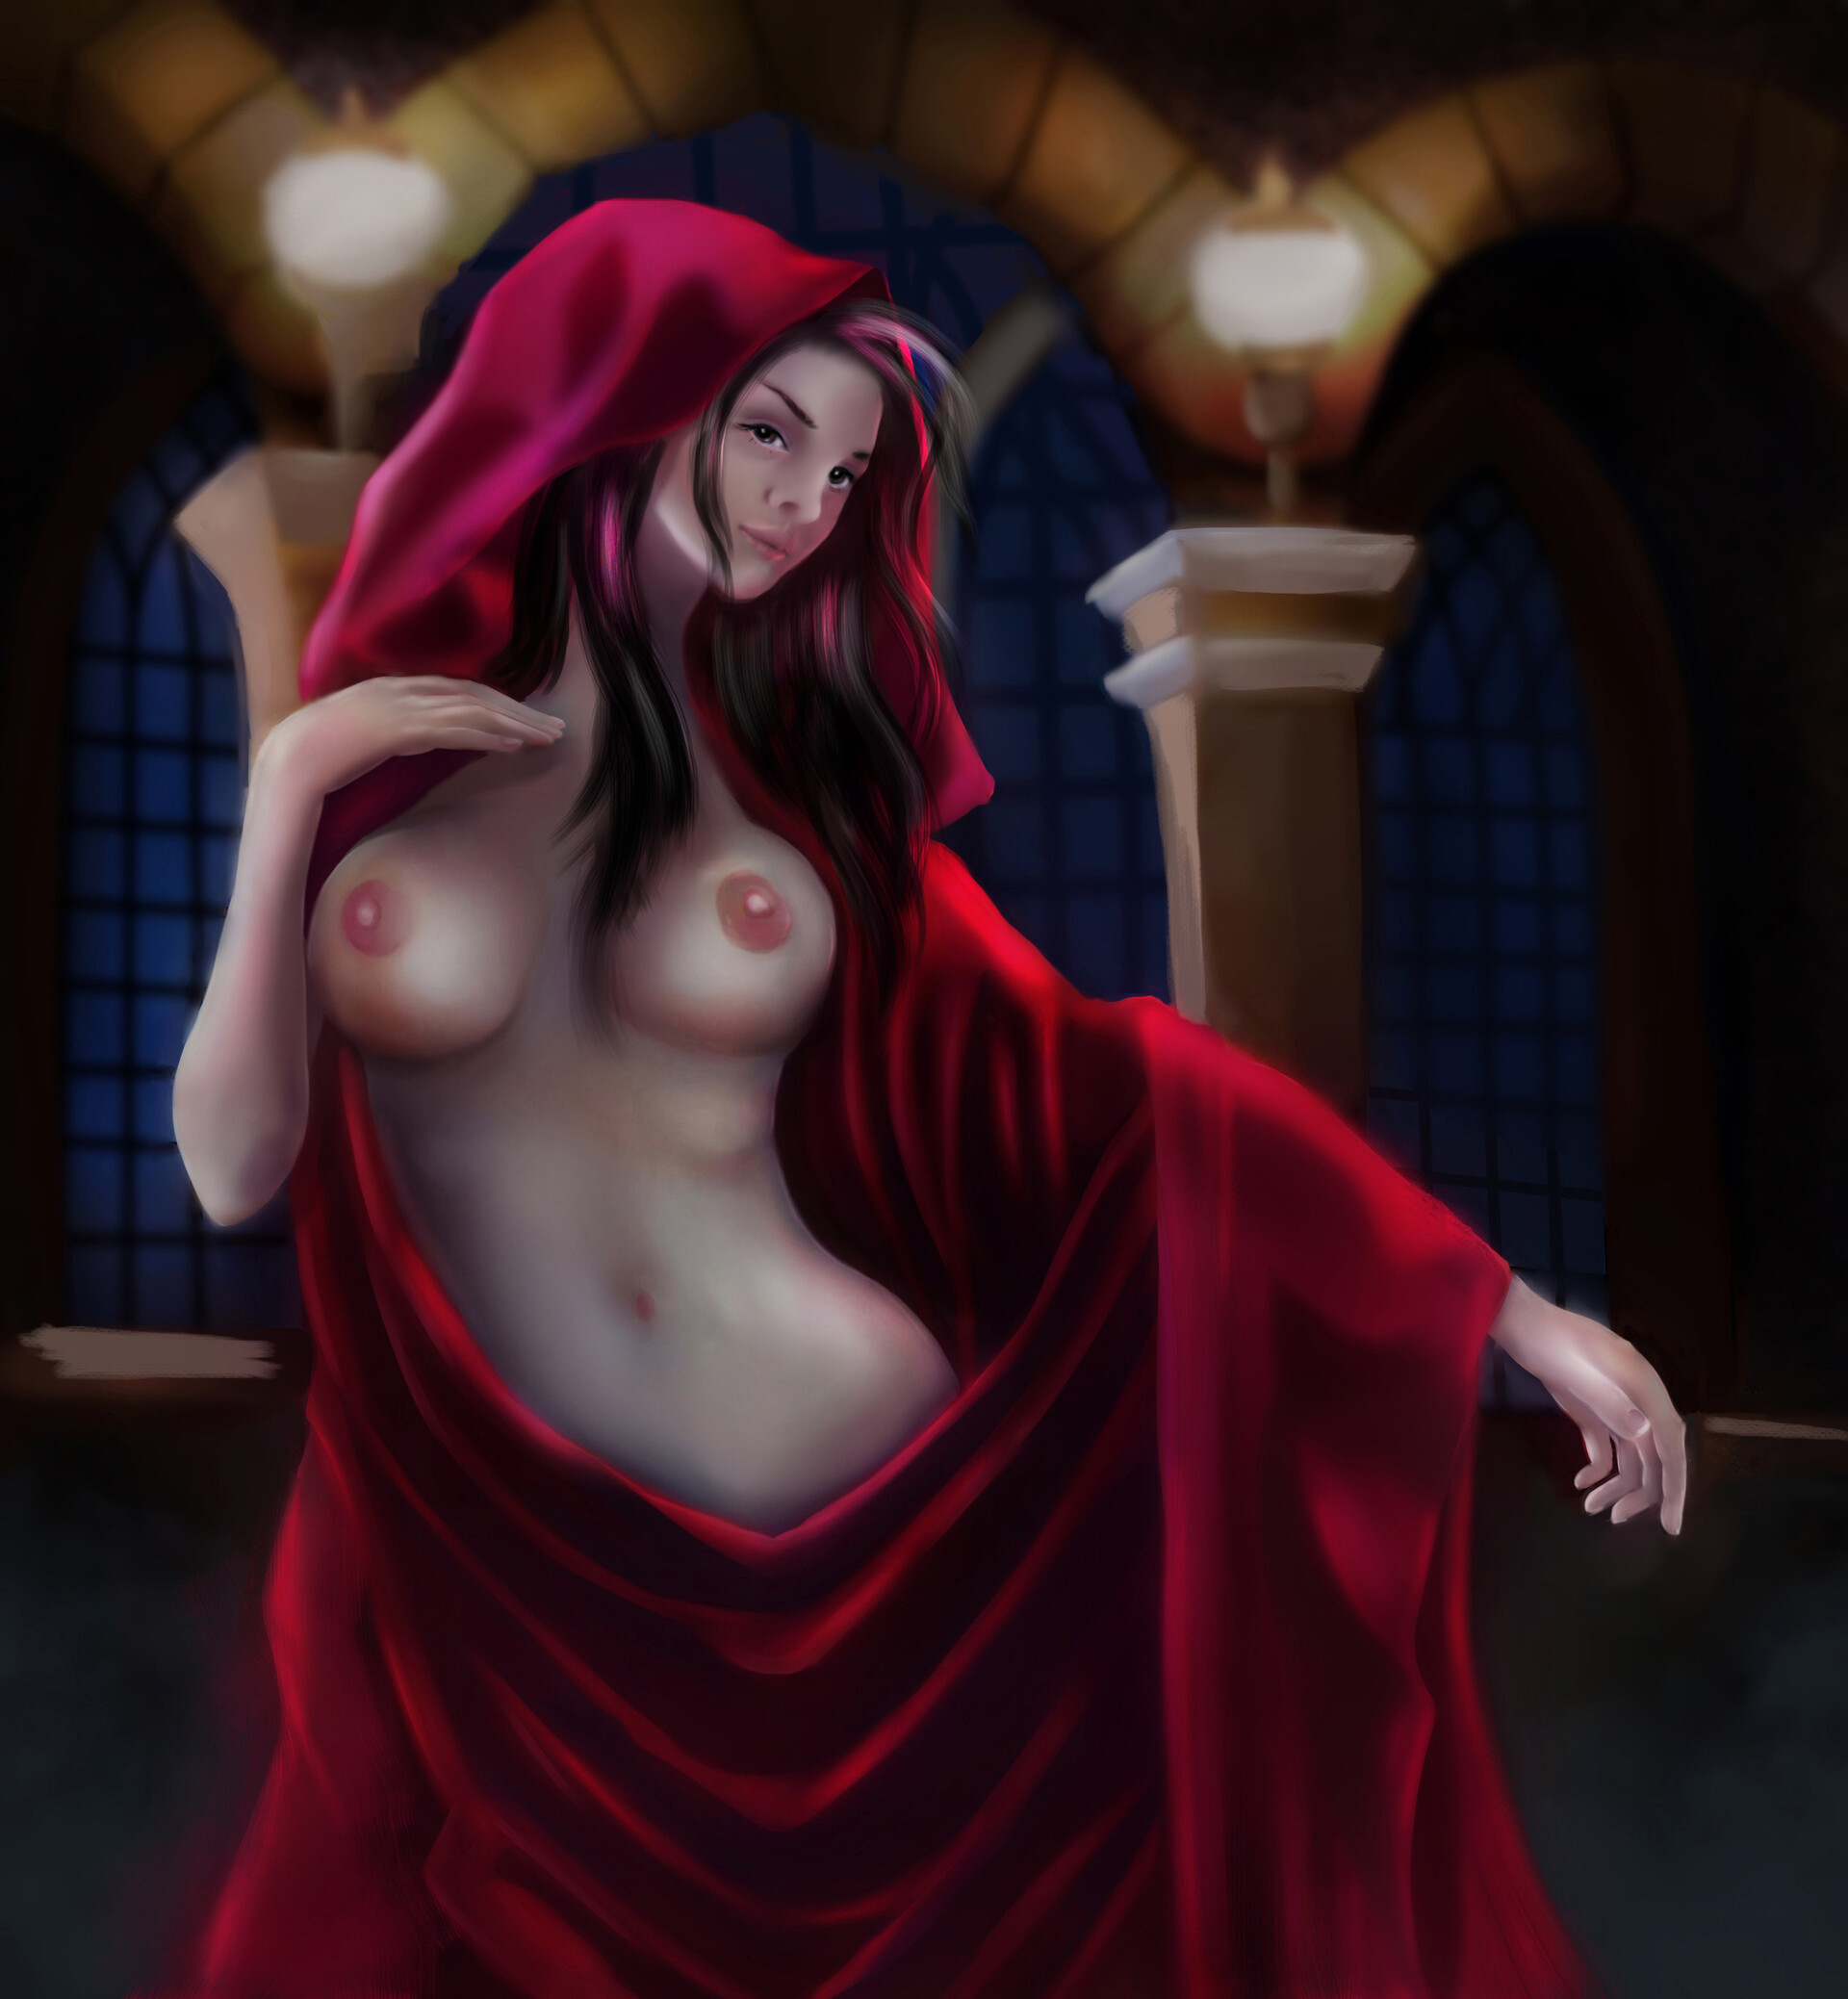 Scribbles art girl in the red robe